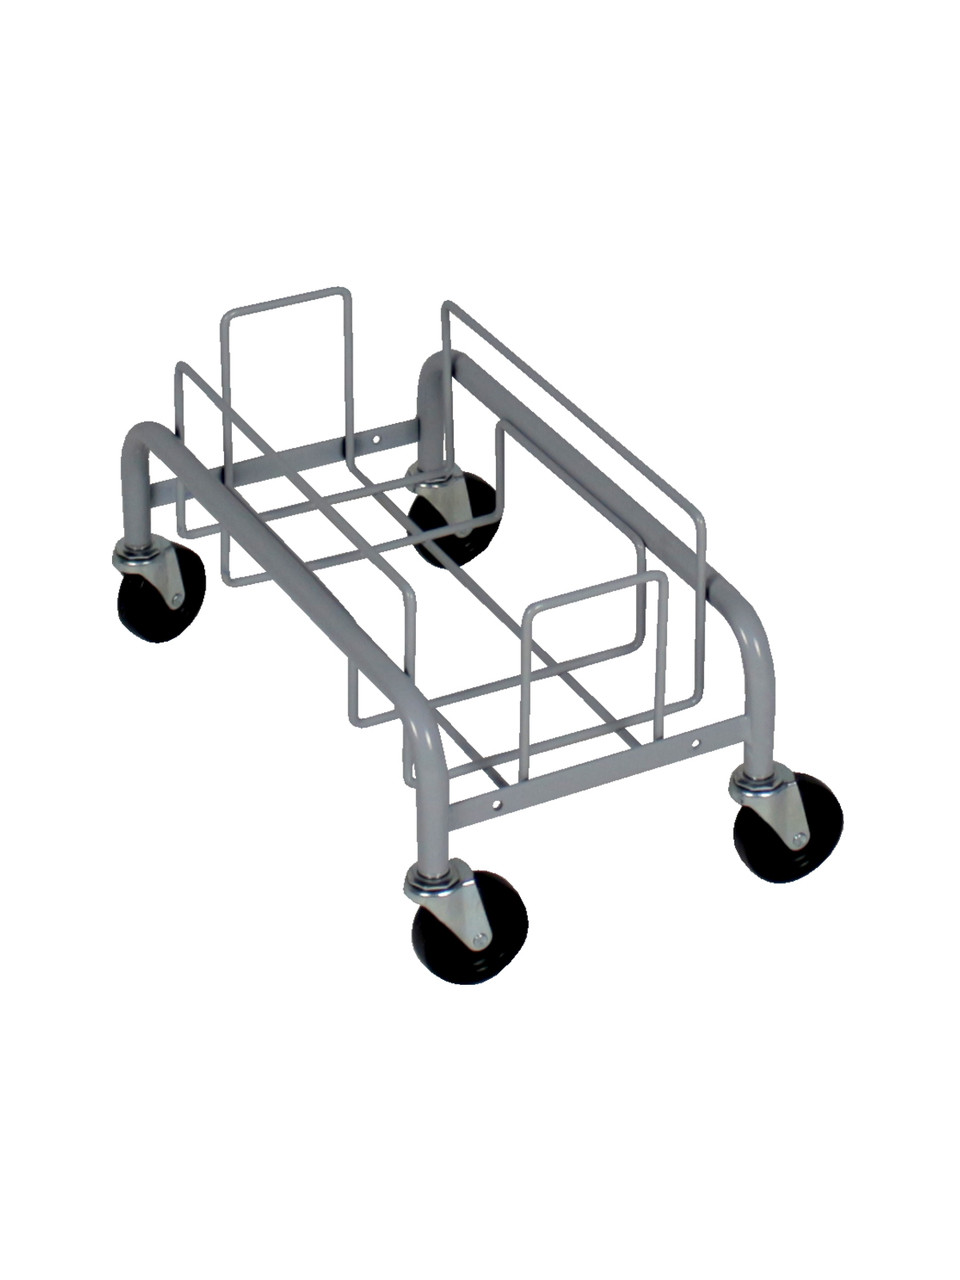 Optional Dolly Available